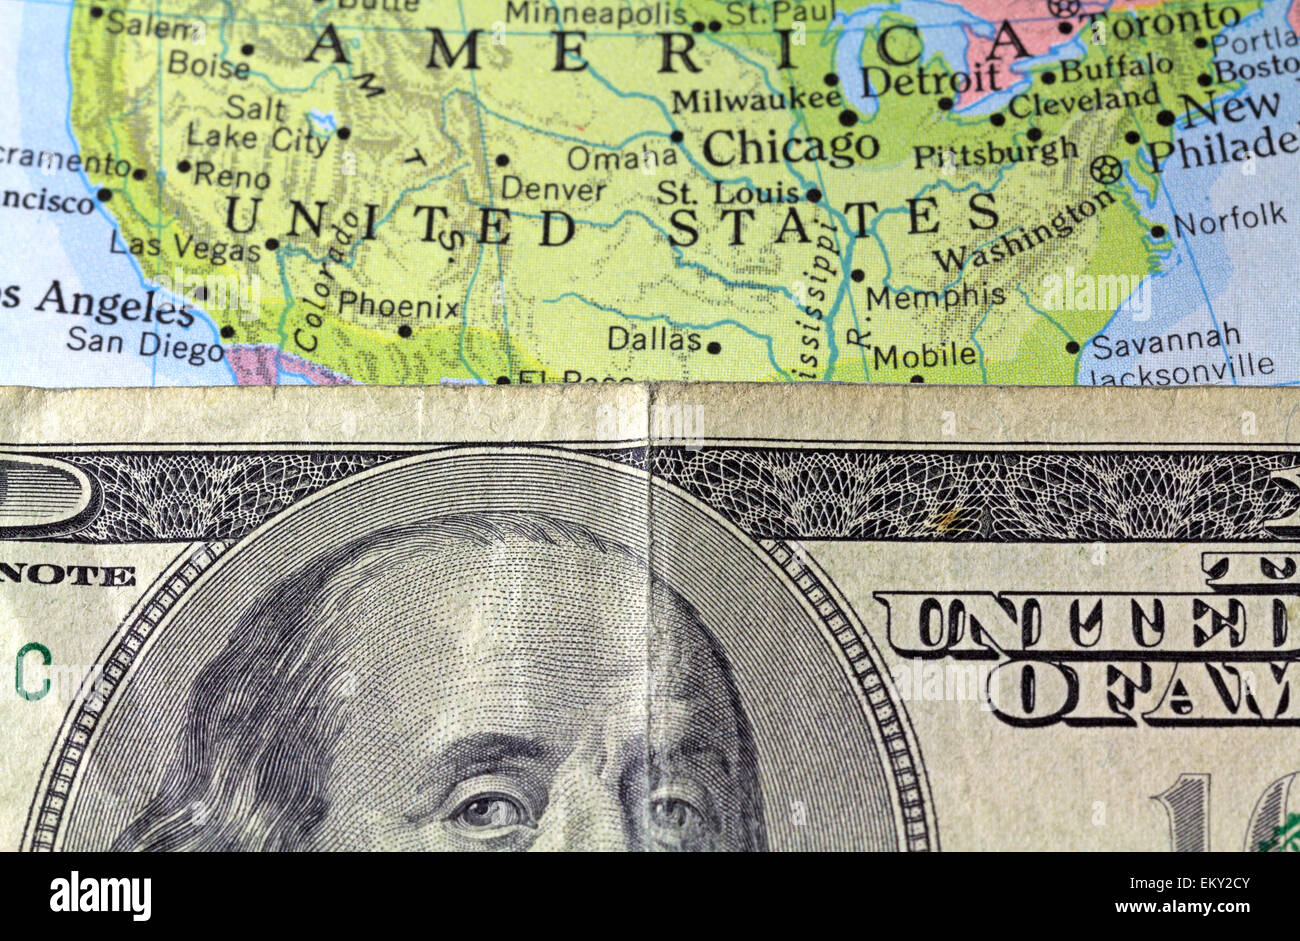 A partial view of Benjamin Franklin on a hundred dollar bill atop an old atlas showing the United States. - Stock Image